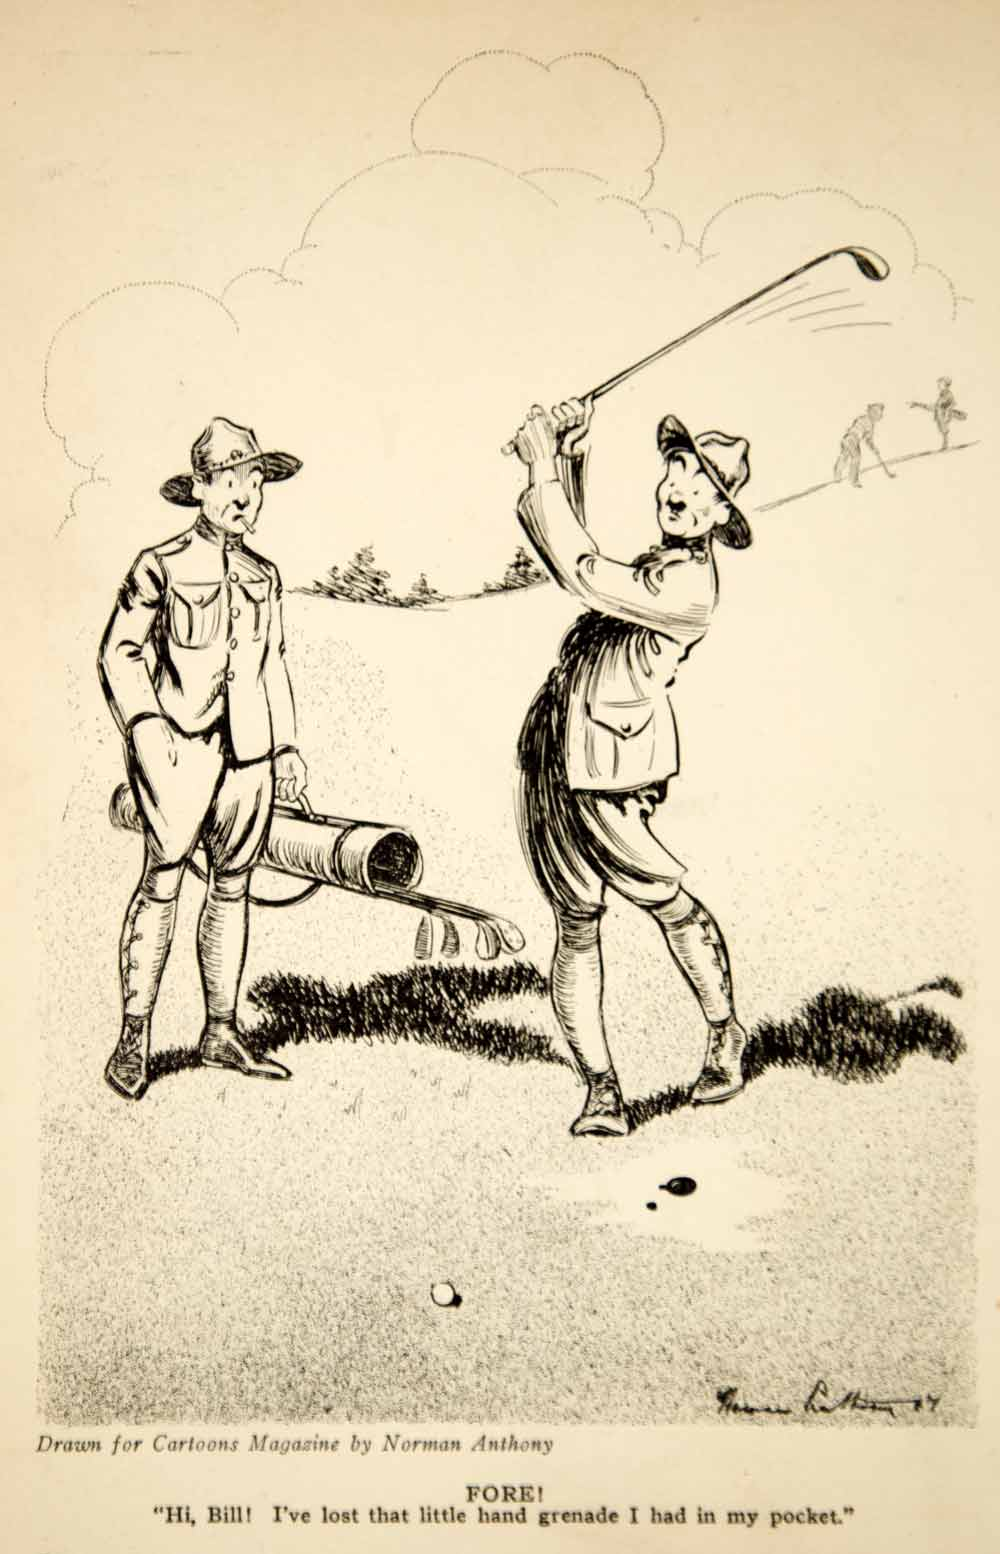 1917 Print World War I Cartoon Art Norman Anthony Soldiers Golfing Grenade Golf